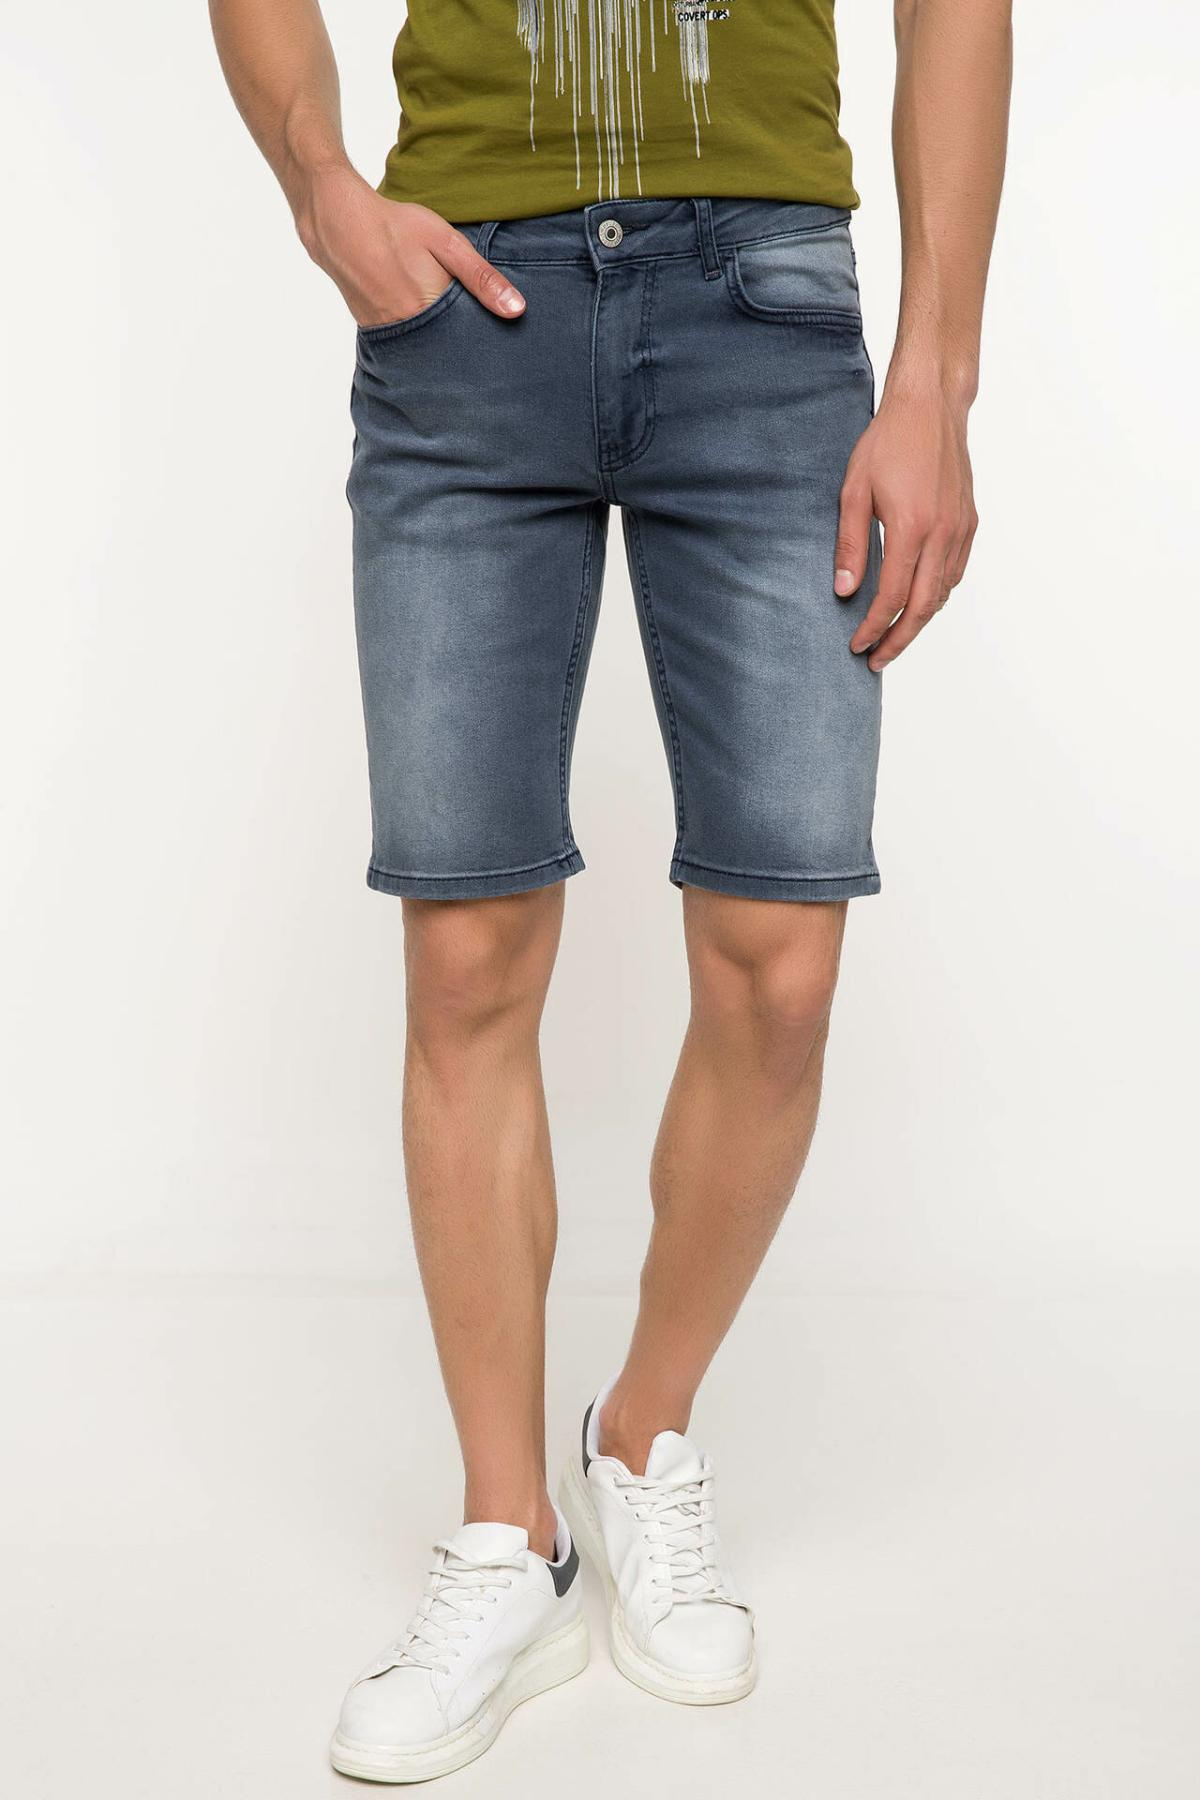 DeFacto Man Summer Short Blue Denim Shorts Men Casual Washed Short Jeans Male Mid-waist Straight Bermuda Shorts-I8800AZ18SM